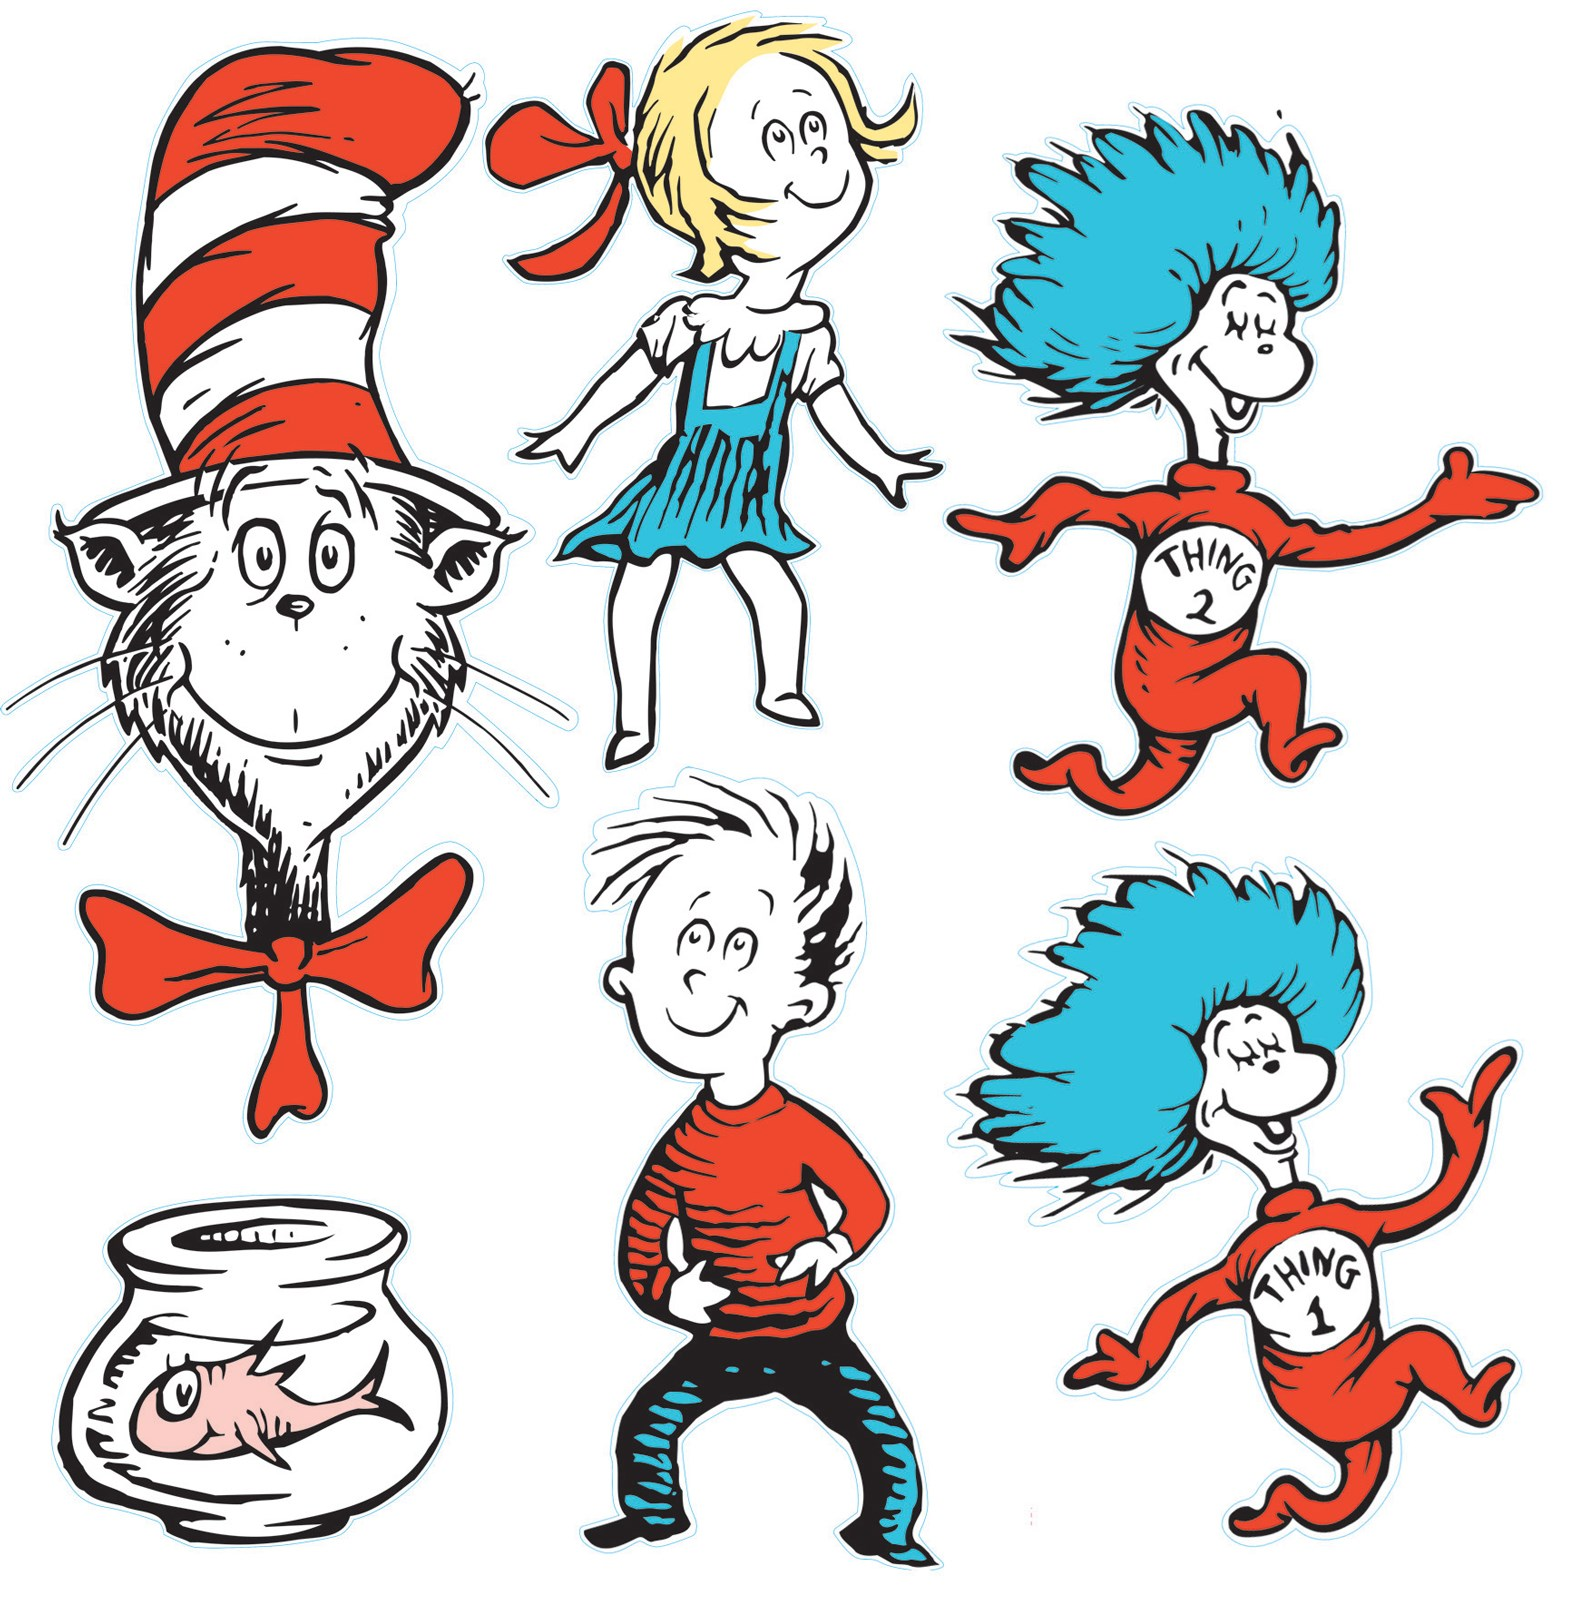 Dr. Seuss Cat in the Hat Giant Characters Decorating Kit